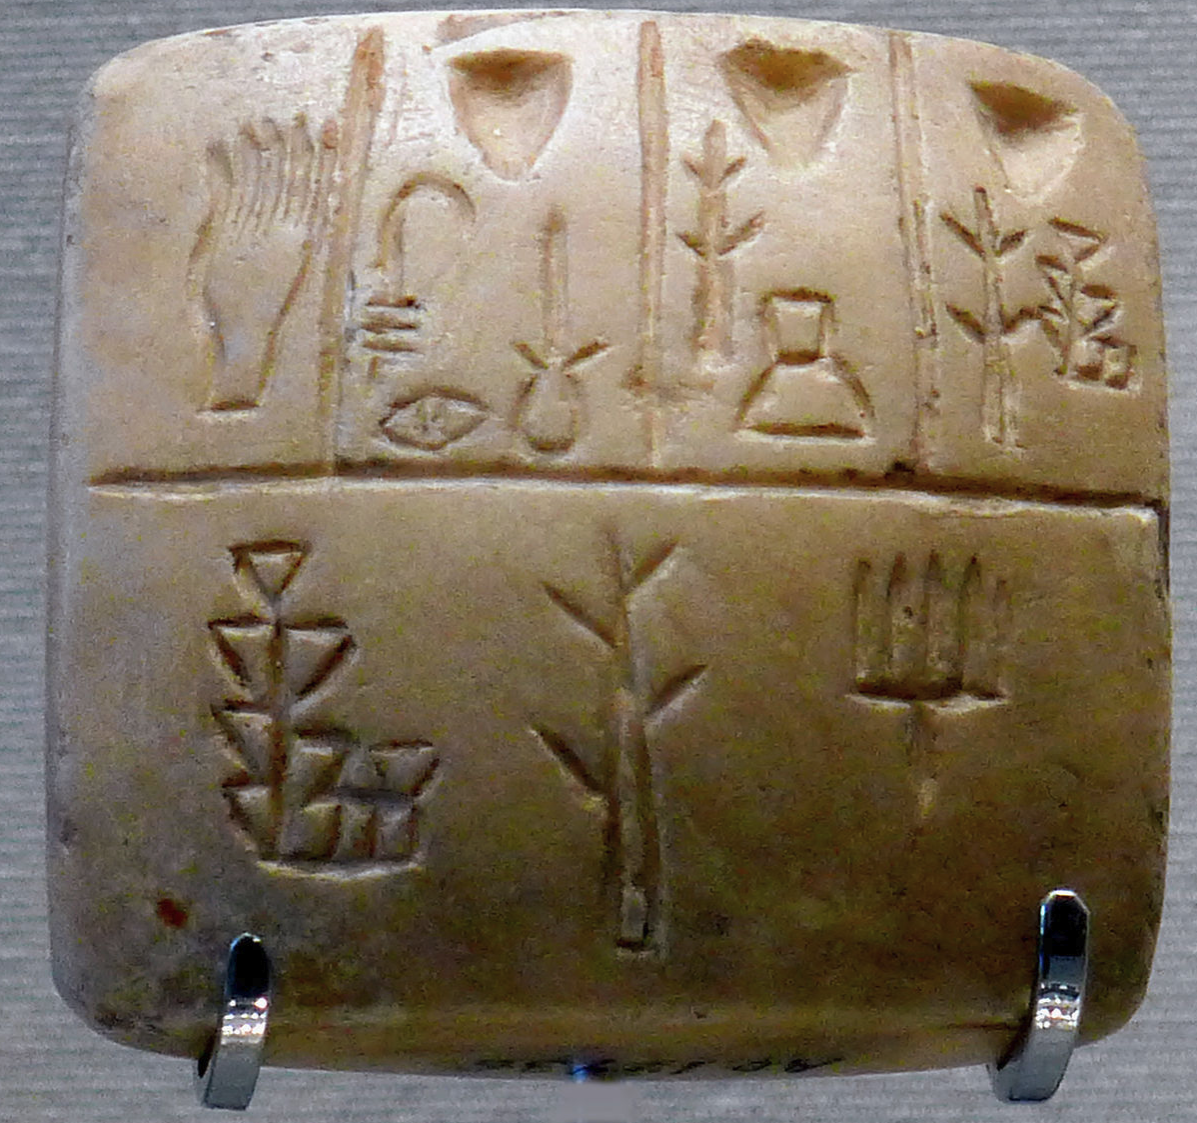 Tablet with proto-cuneiform pictographic characters (end of 4th millennium BC), Uruk III. This is thought to be a list of slaves names, the hand in the upper left corner representing the owner.[25]